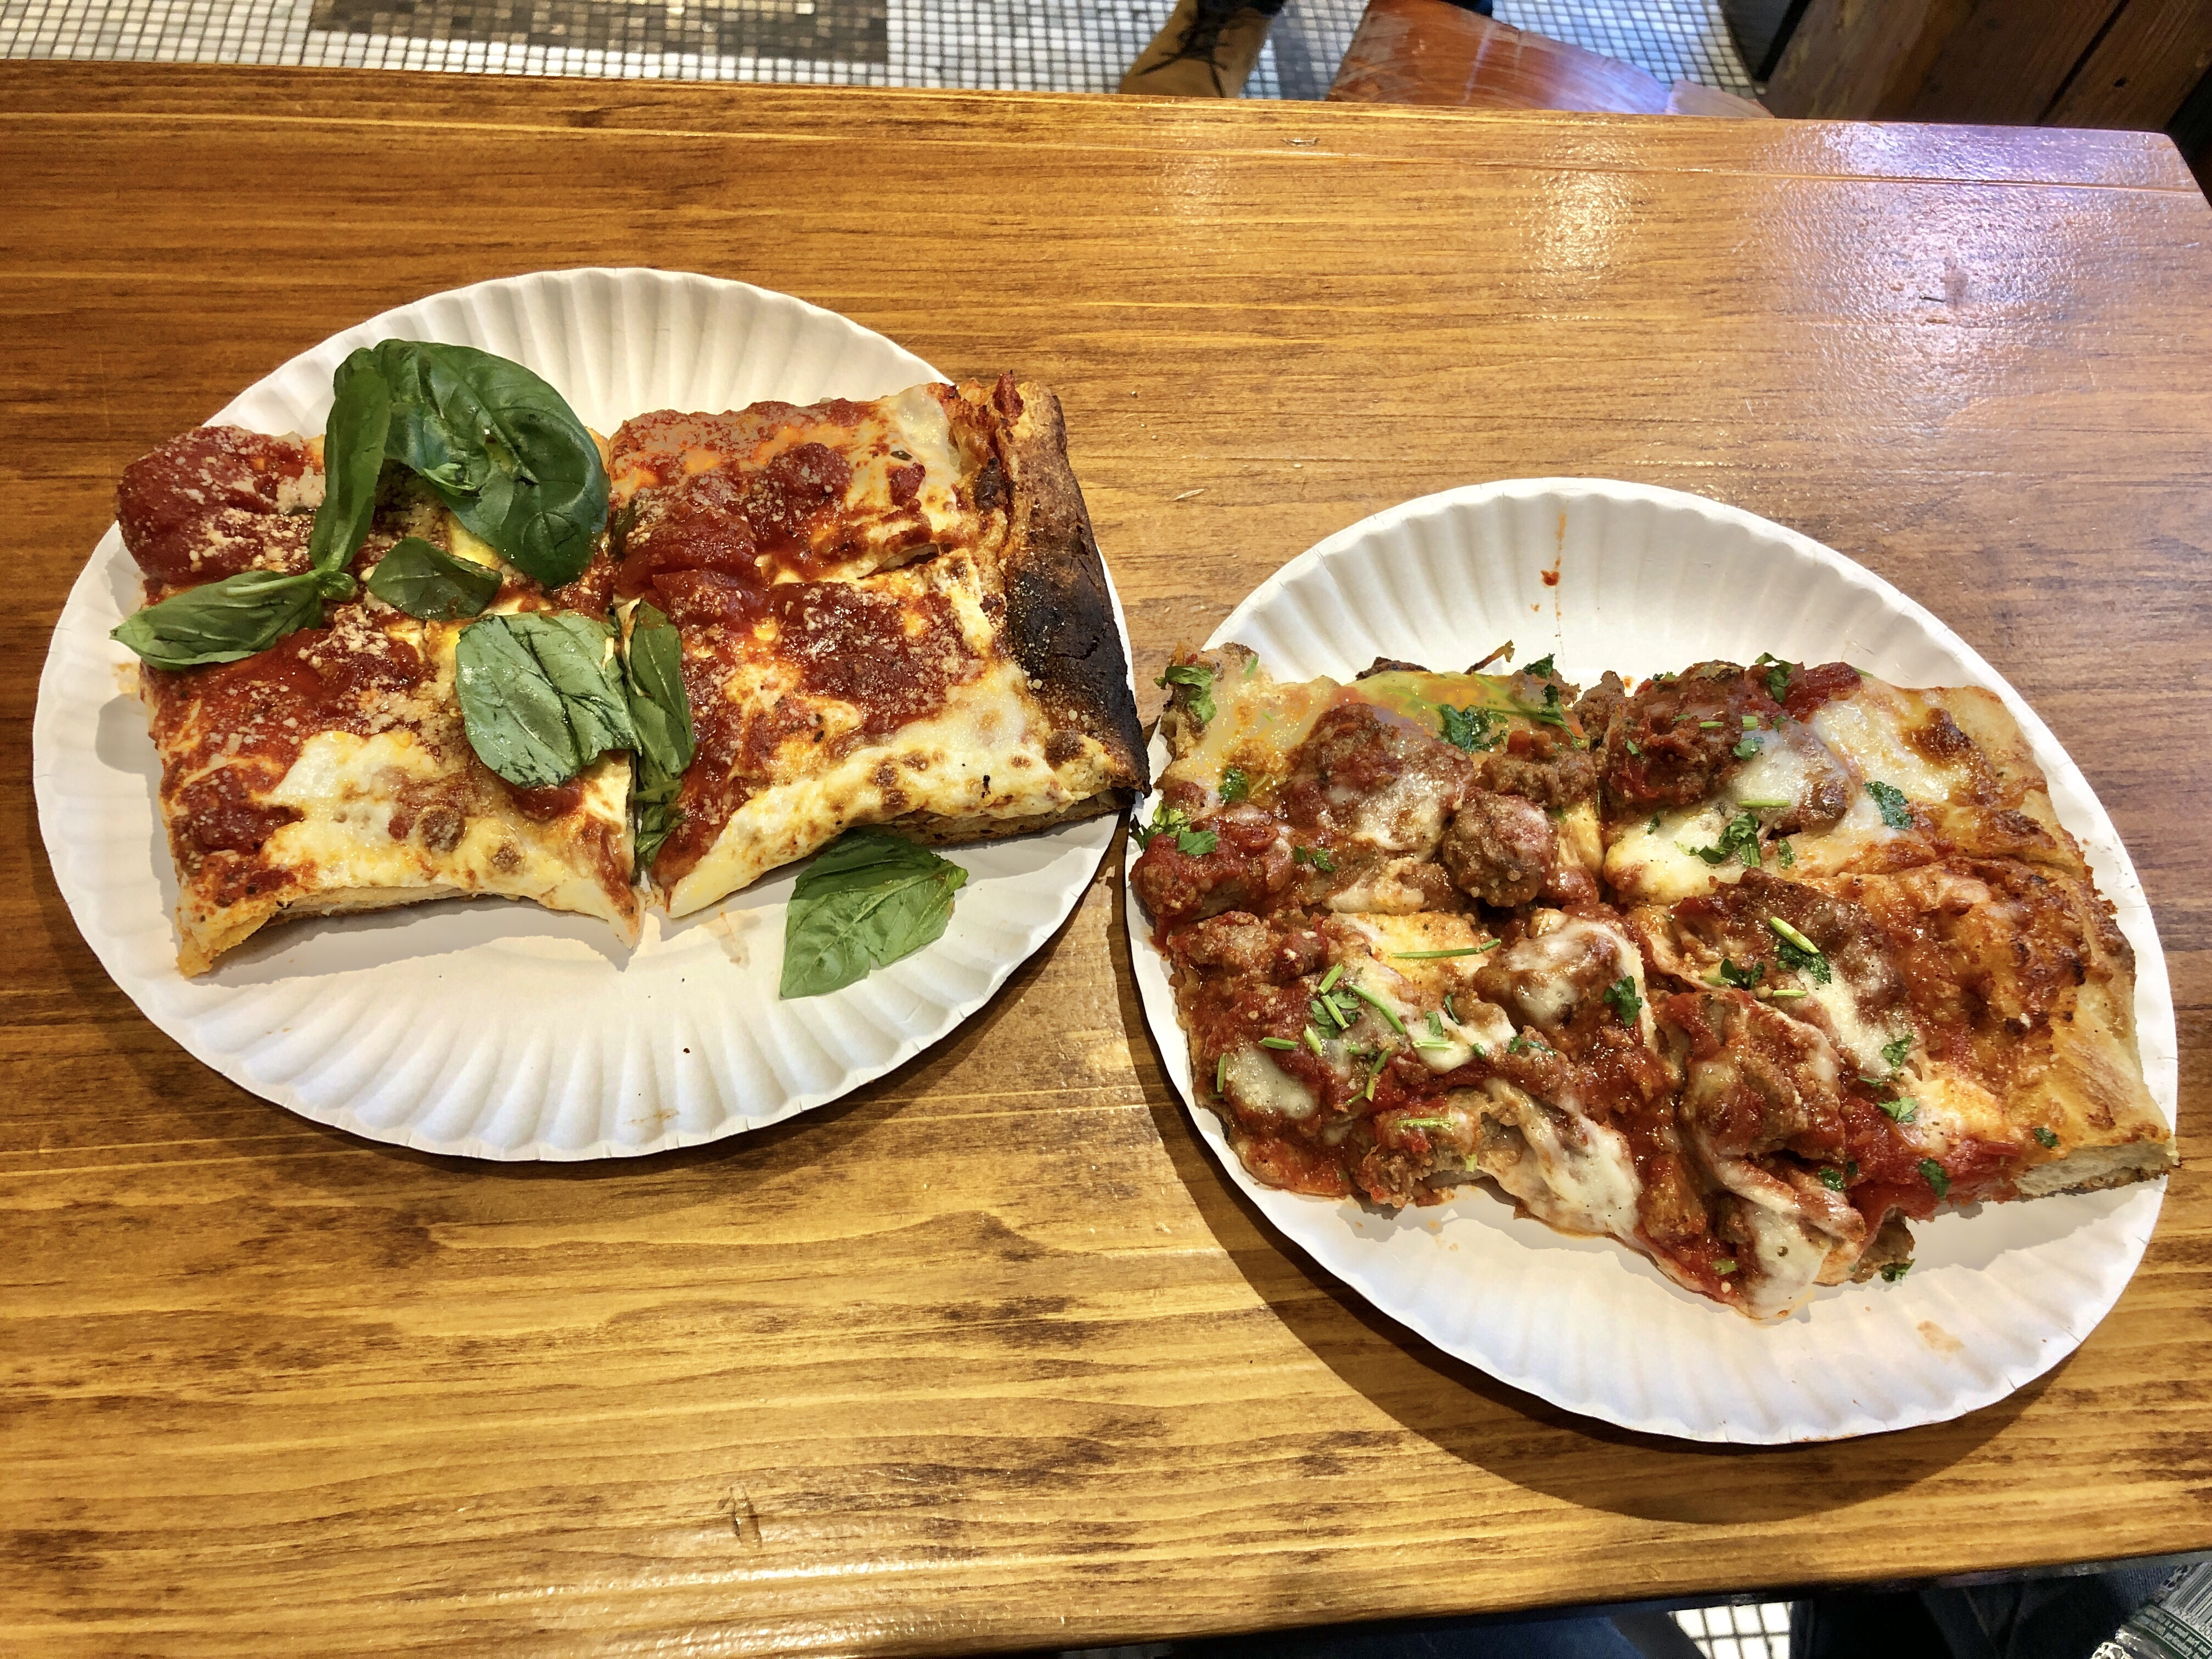 My Pie Pizzeria Romana pizza slice from our New York Pizza tour